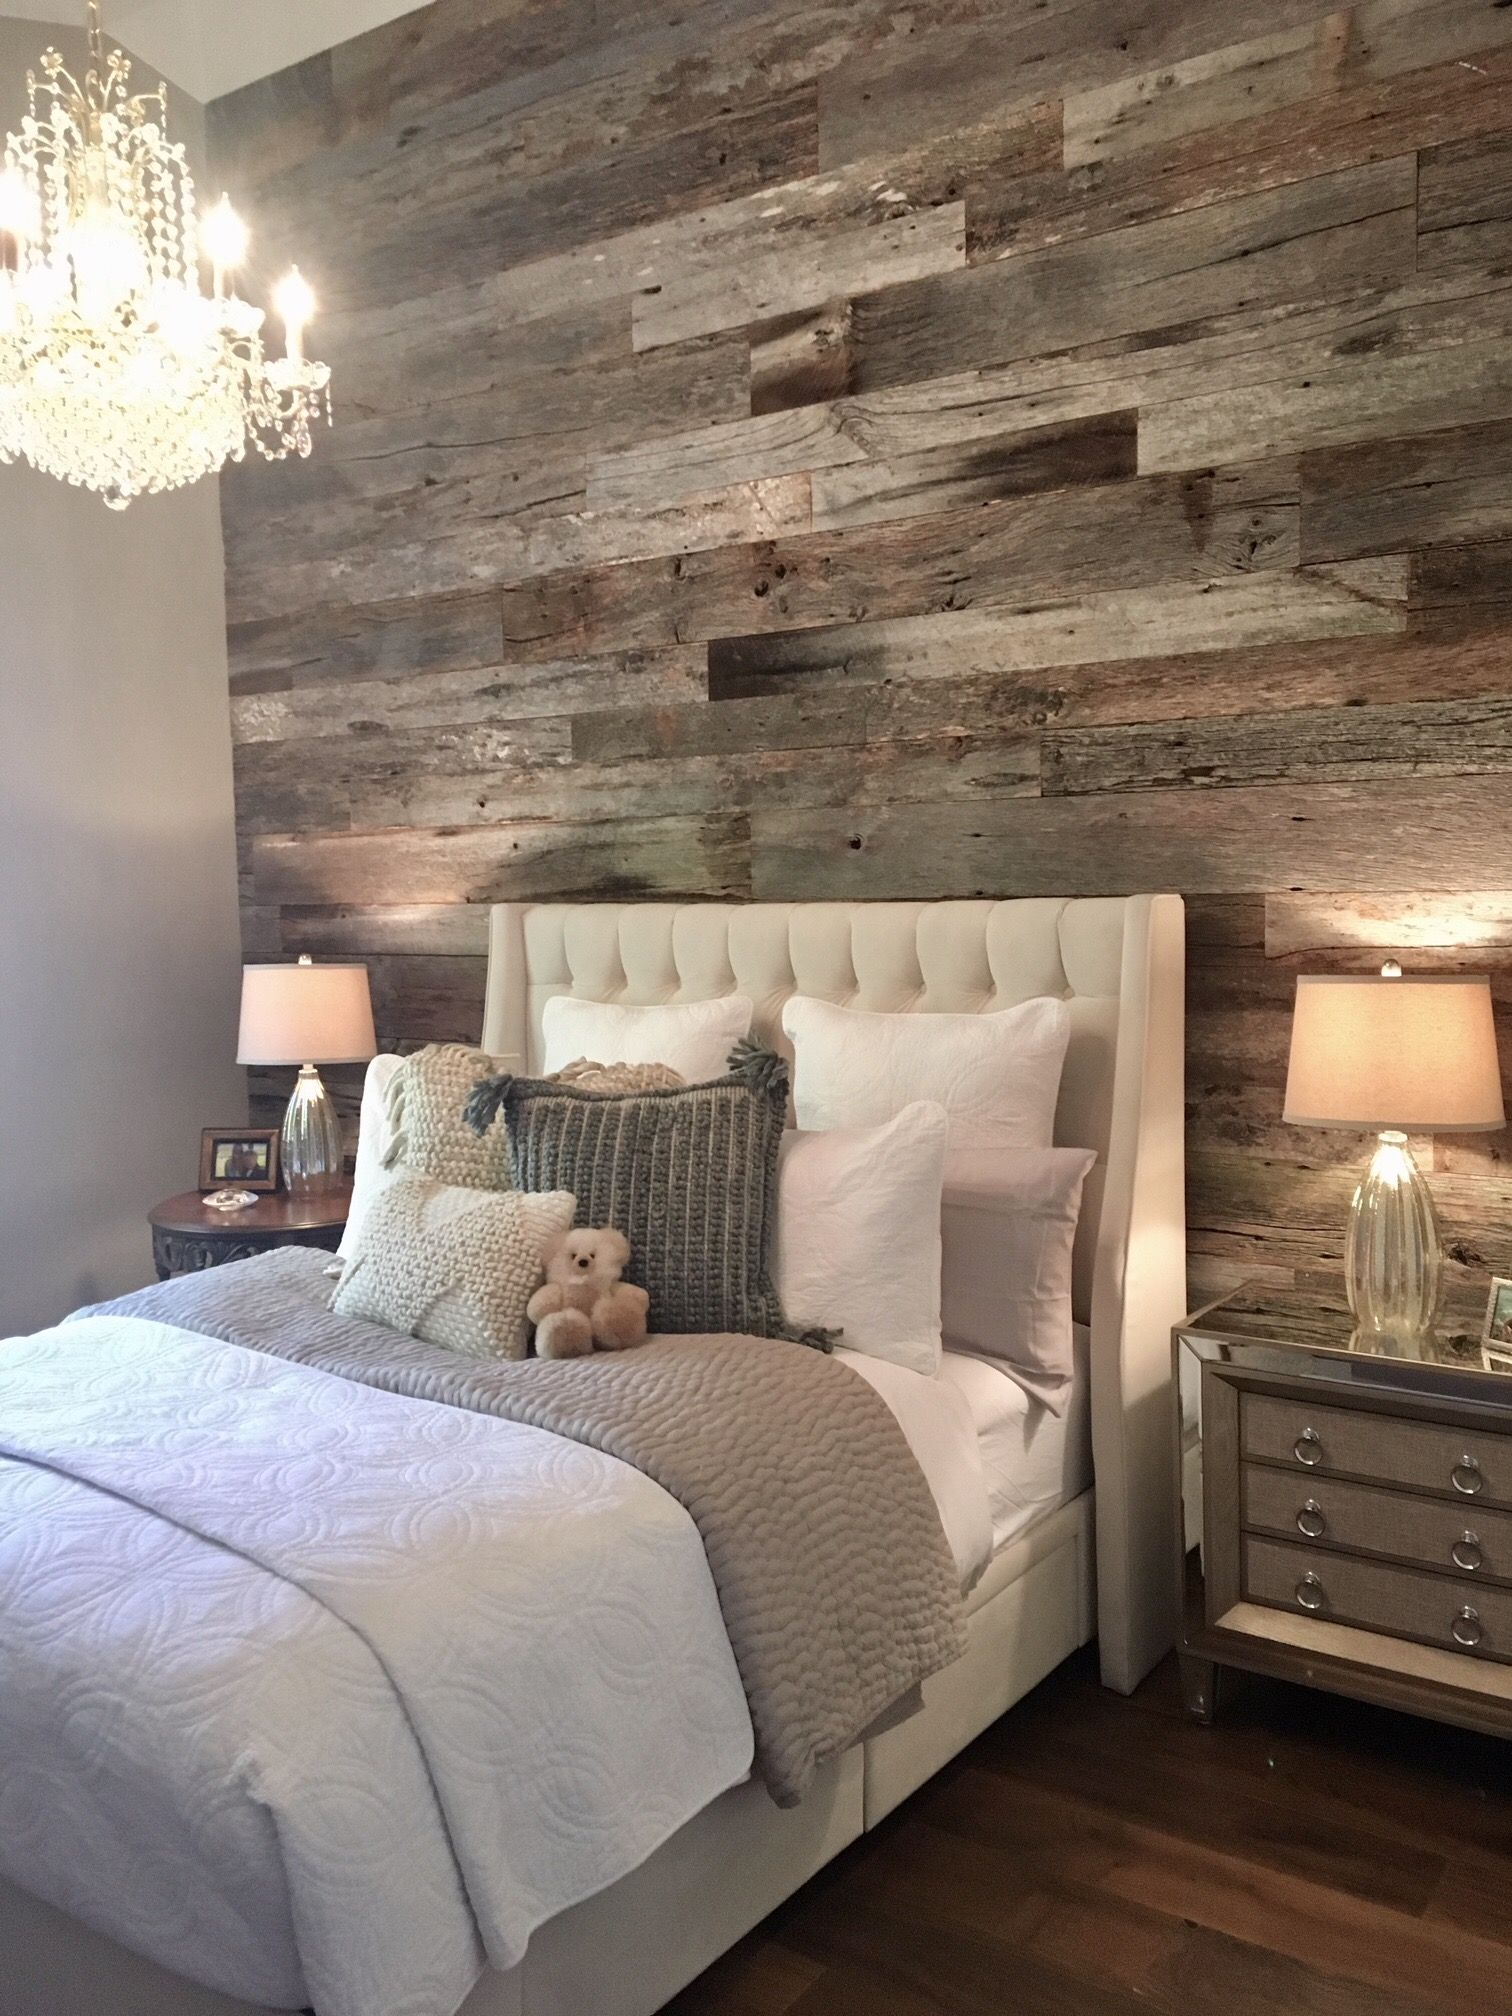 Pin By ʚarleneɞ On Bedrooms Ideas Rustic Bedroom Design Rustic Bedroom Wood Walls Bedroom